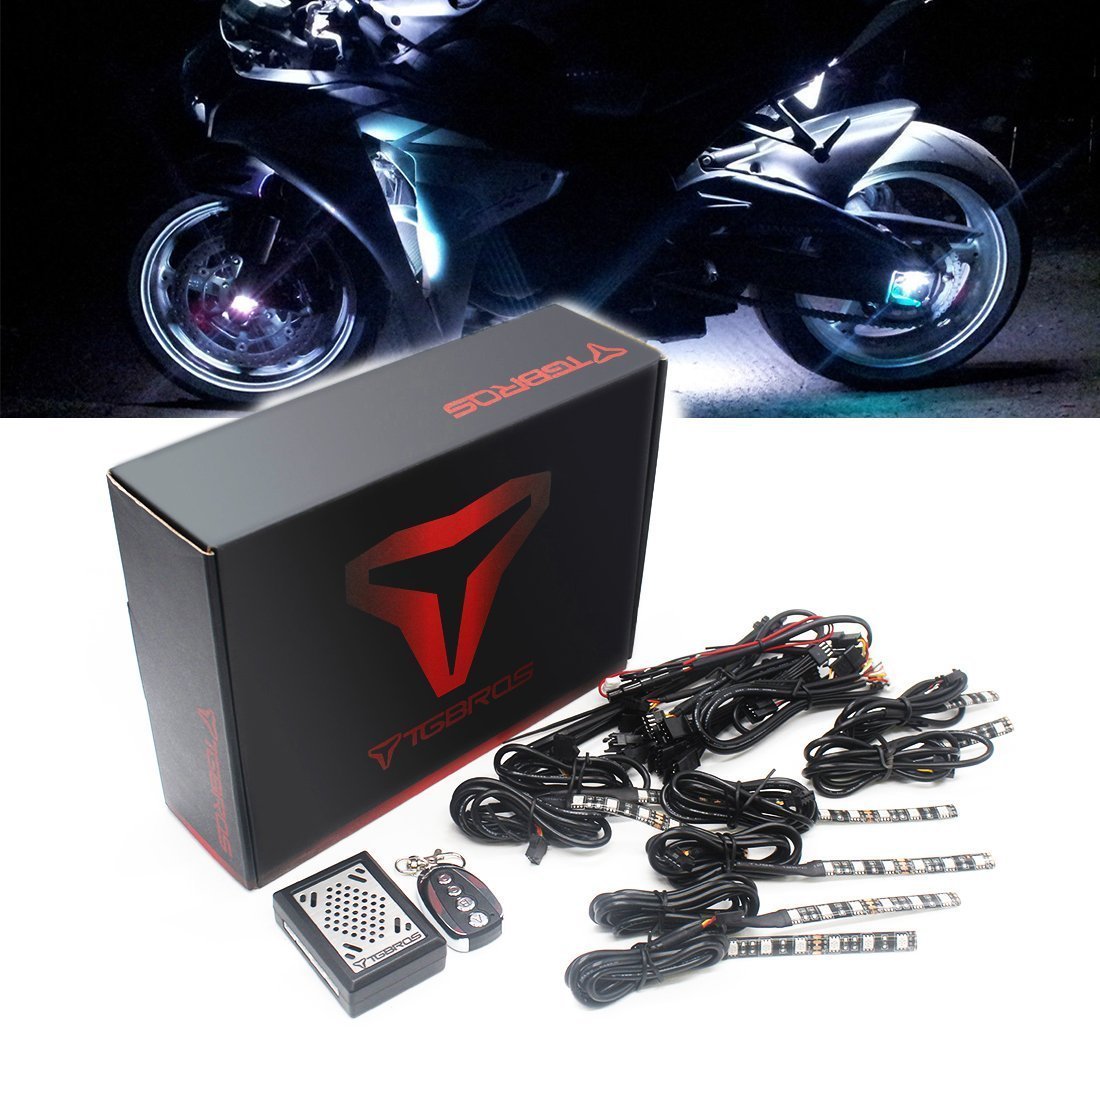 Boats BBUT 6PCS Muti-Colour Sound Activated Flash Motorcycle LED Accent Light Kit Under Glow RGB 5050 Strips For All Motorcycle ATV